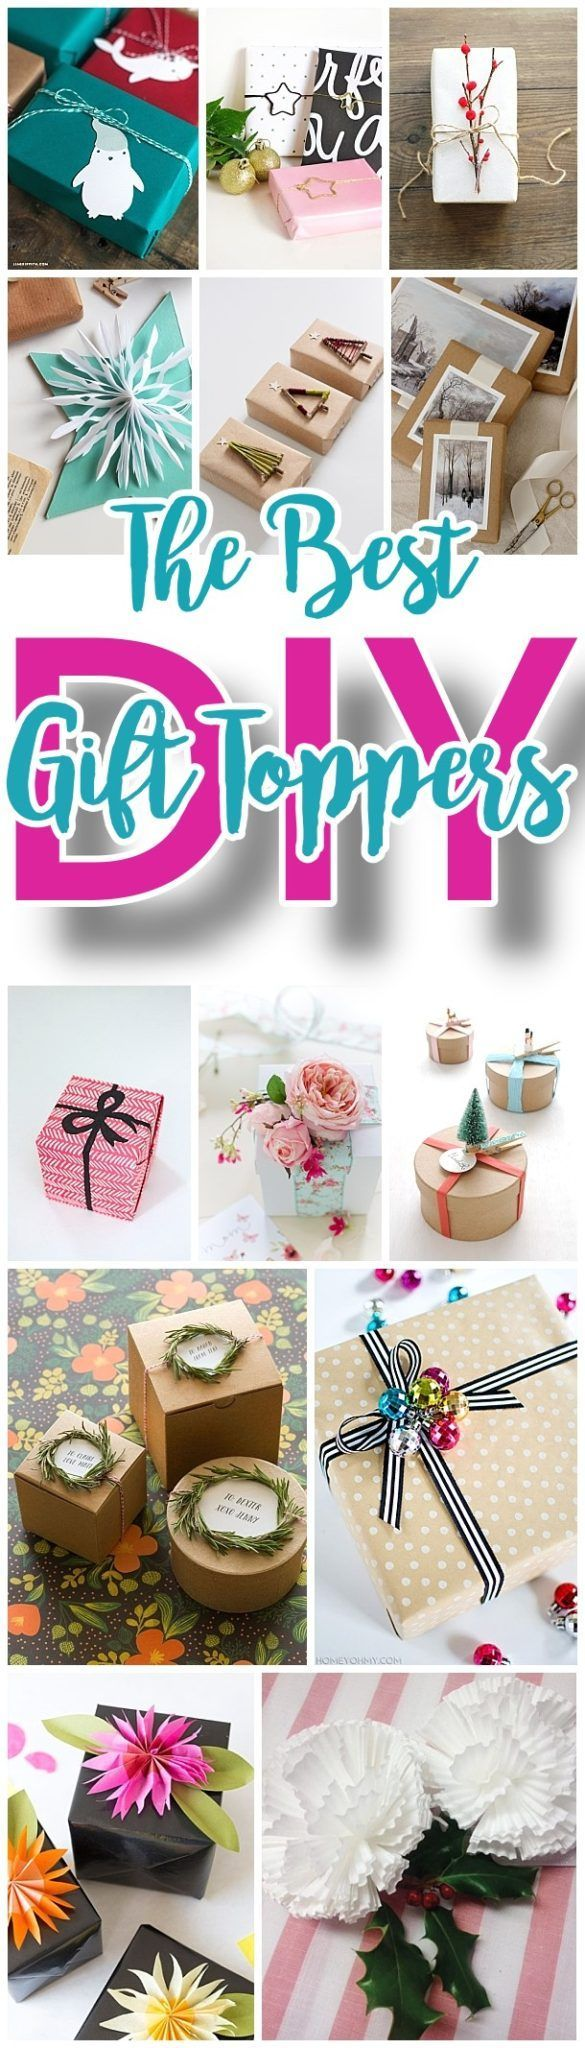 The BEST DIY Gift Toppers - pretty handmade EASY, CHEAP and fun gift wrapping ideas for Christmas Birthdays Holidays and any time you want someone to feel extra special! #giftwrapping #gifttoppers #christmasgiftwrapping